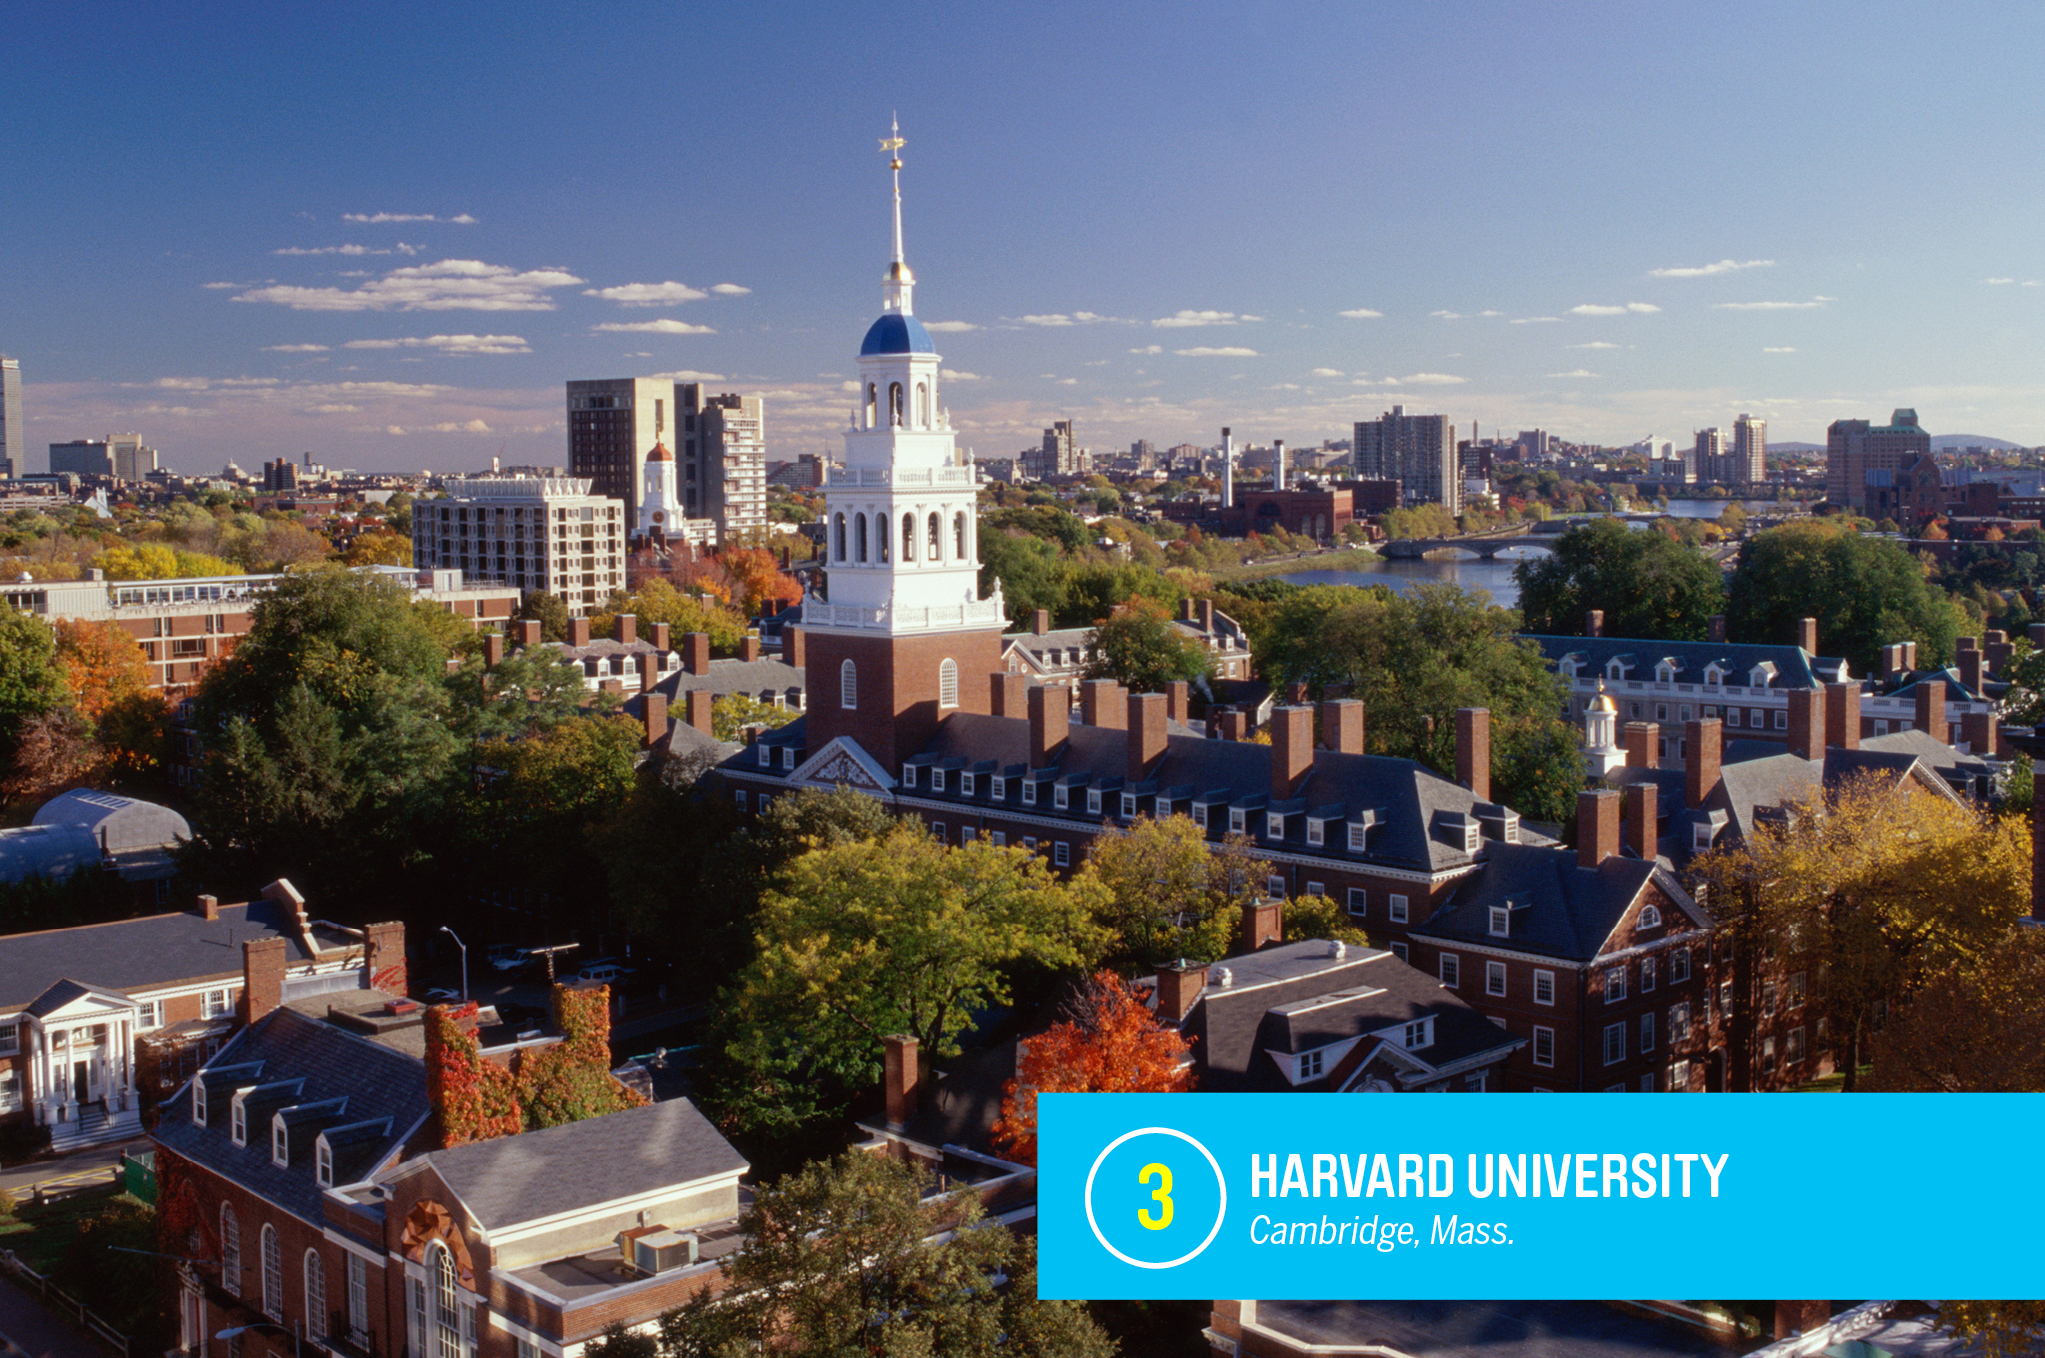 "<a href=""https://money.com/best-colleges/profile/harvard-university/"" target=""_blank"">Harvard</a> may be the most recognizable college in the world, and it's practically synonymous with the prestigious Ivy League. Like many of its peers, Harvard excels in Money's rankings not only because of the outstanding education it provides but also thanks to its generous financial aid program. <a href=""https://money.com/best-colleges/profile/harvard-university/"" target=""_blank"">FULL PROFILE</a>"